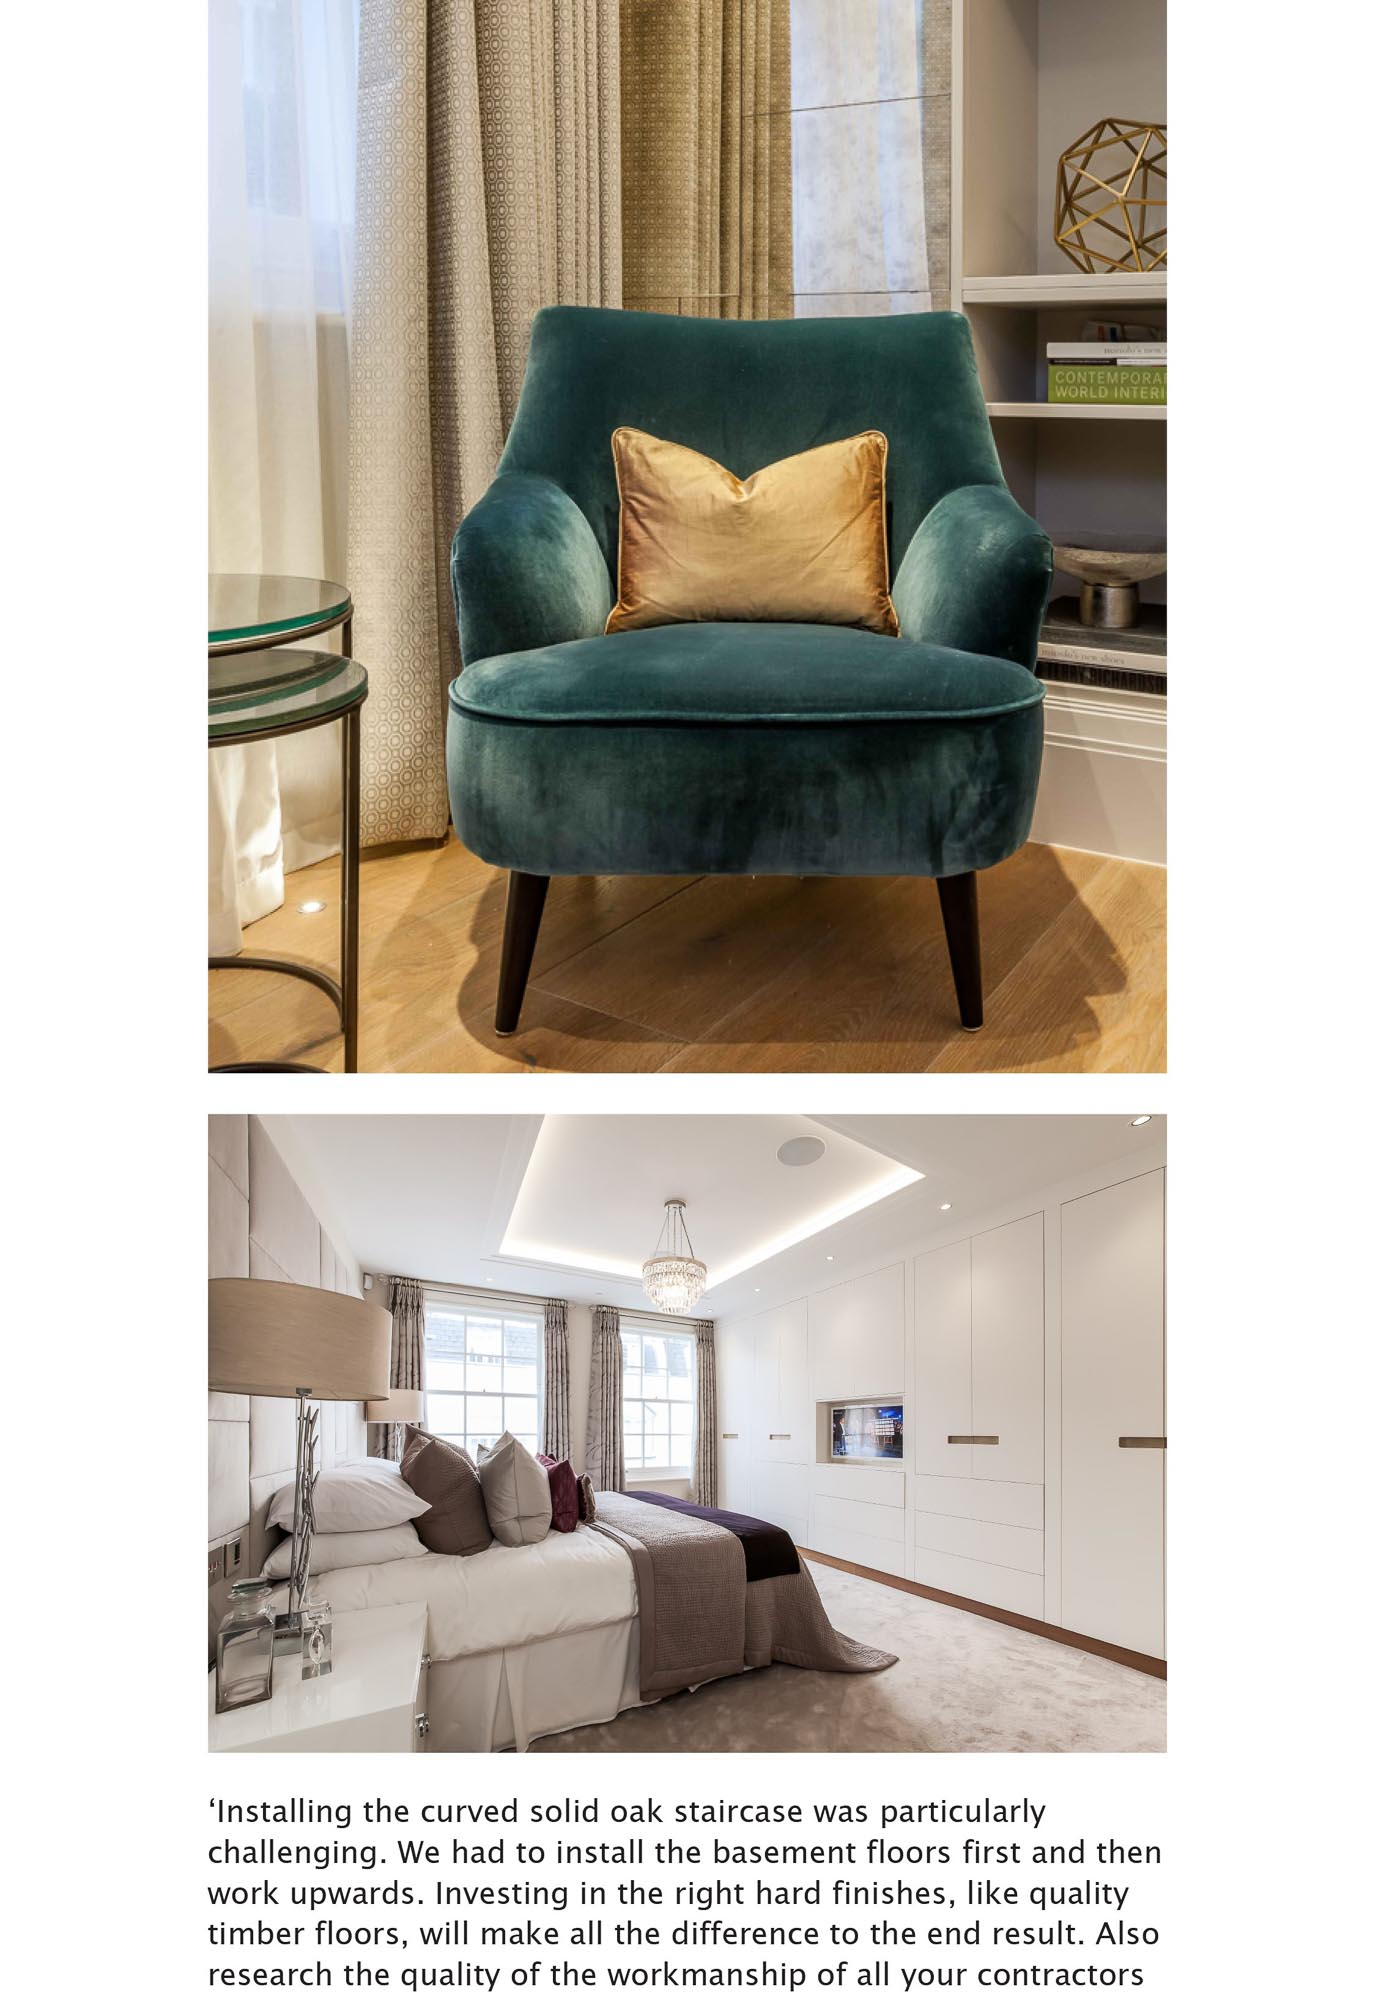 achica-living-chelsea-townhouse-by-designer-susie-rumbold-01-03-2-2